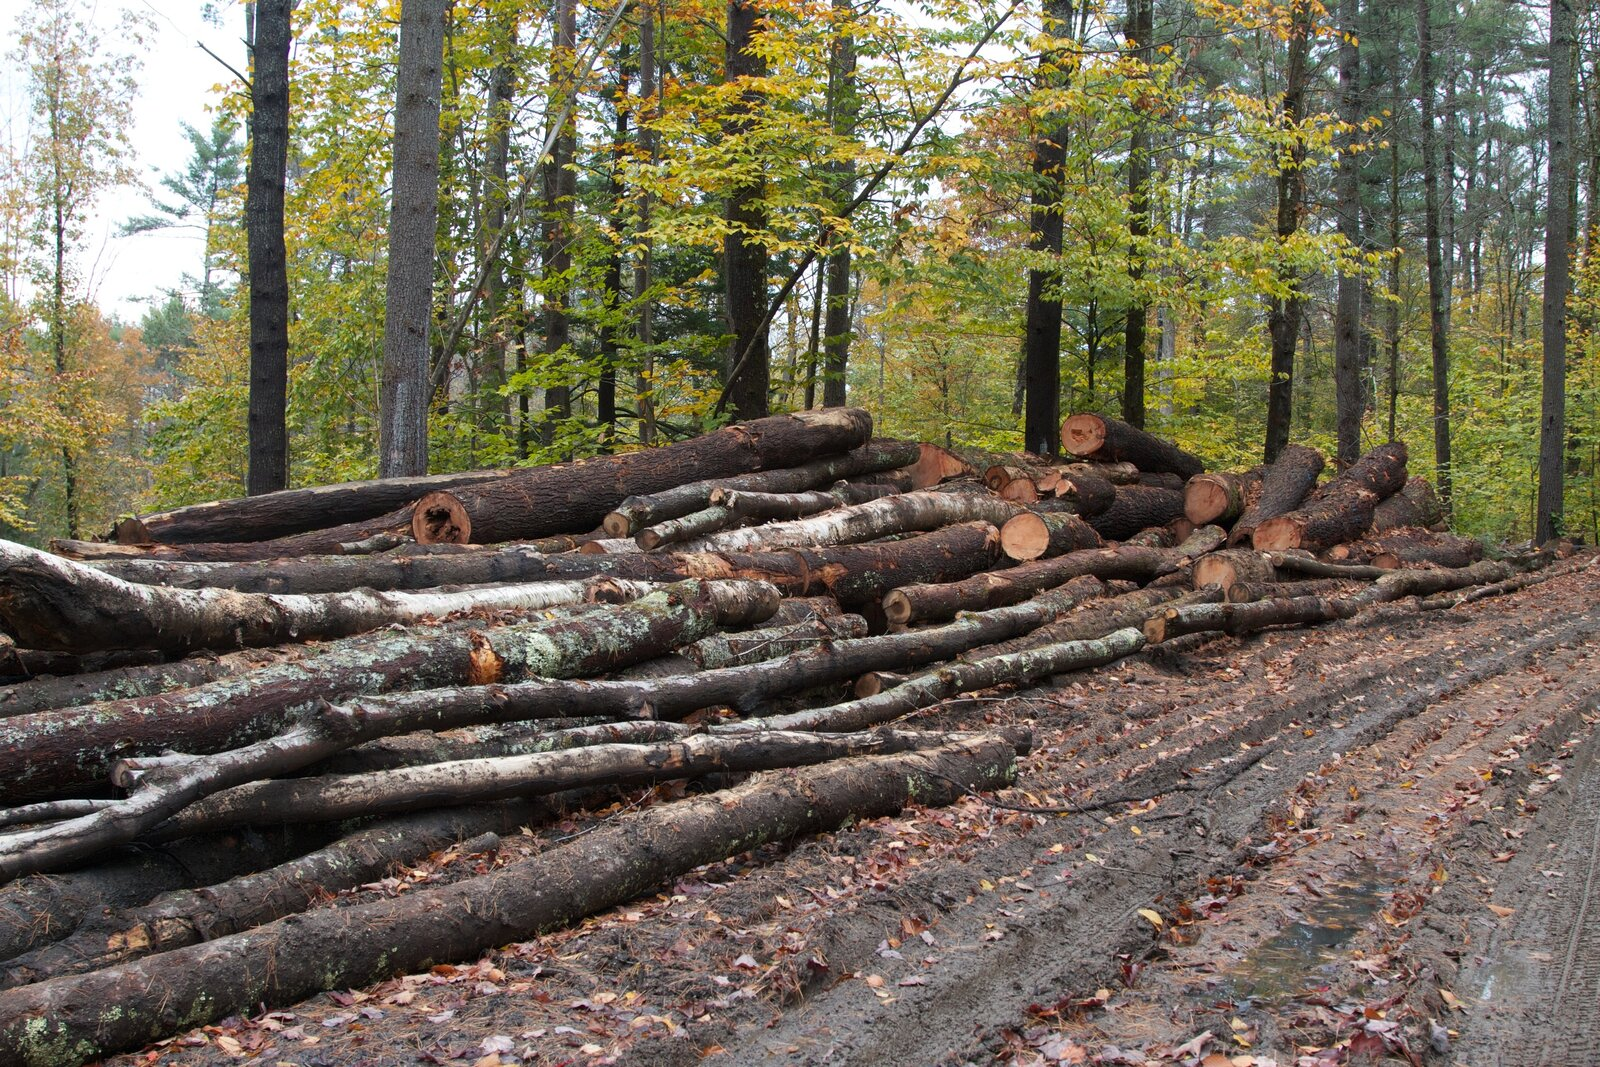 Photograph of felled trees in a forest.